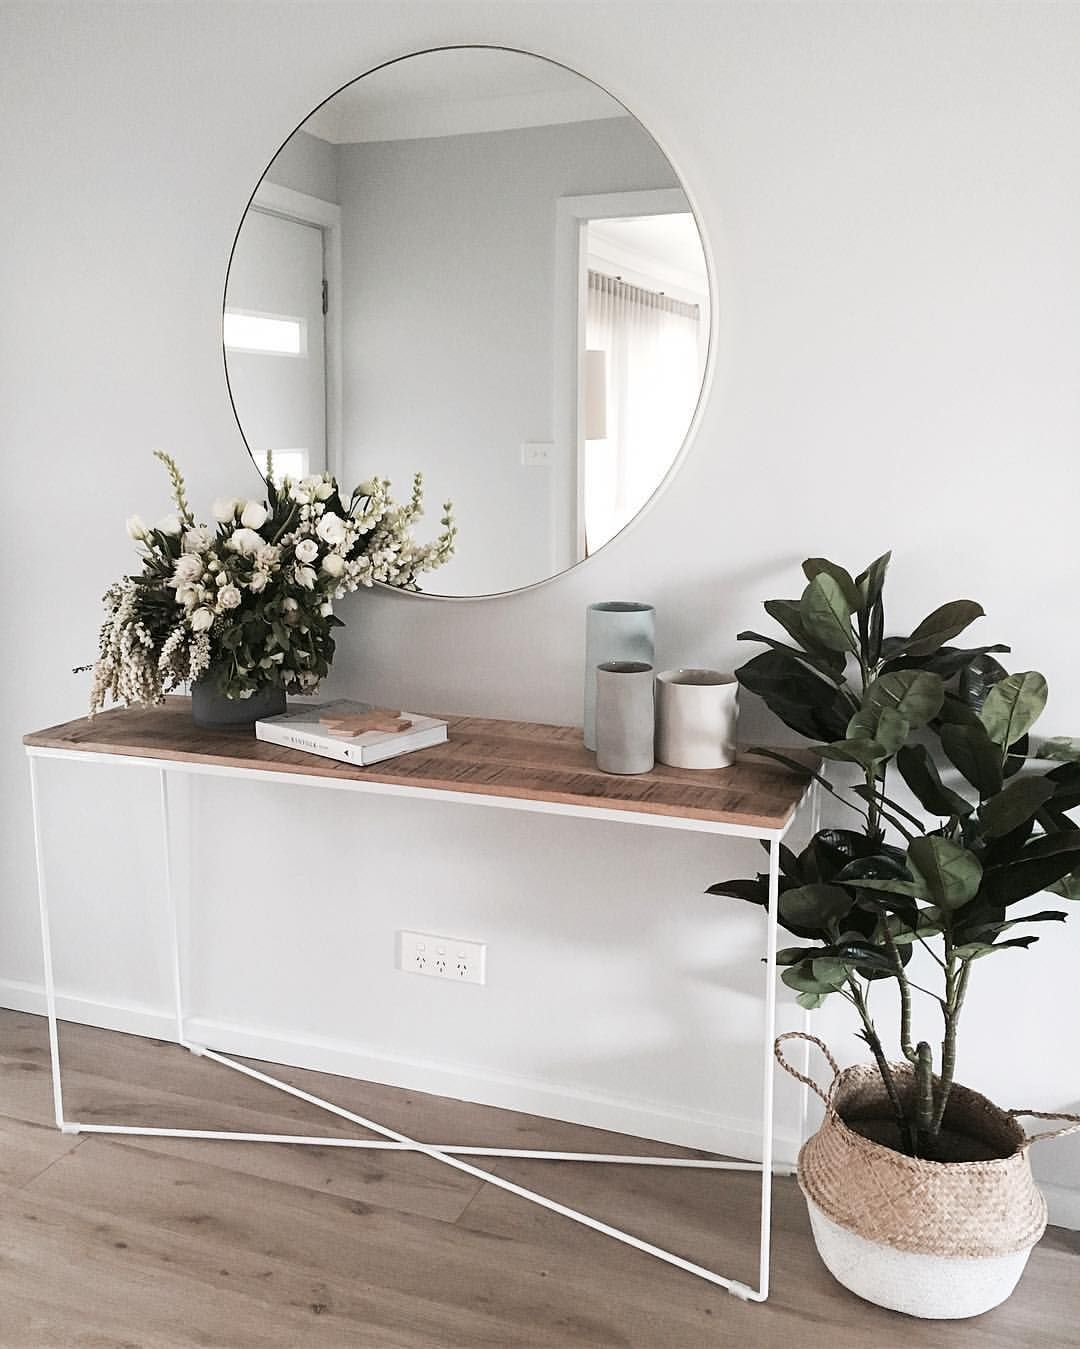 Hallway furniture with mirror  Pin by lizzy hofweber on A relaxing future  Pinterest  Round